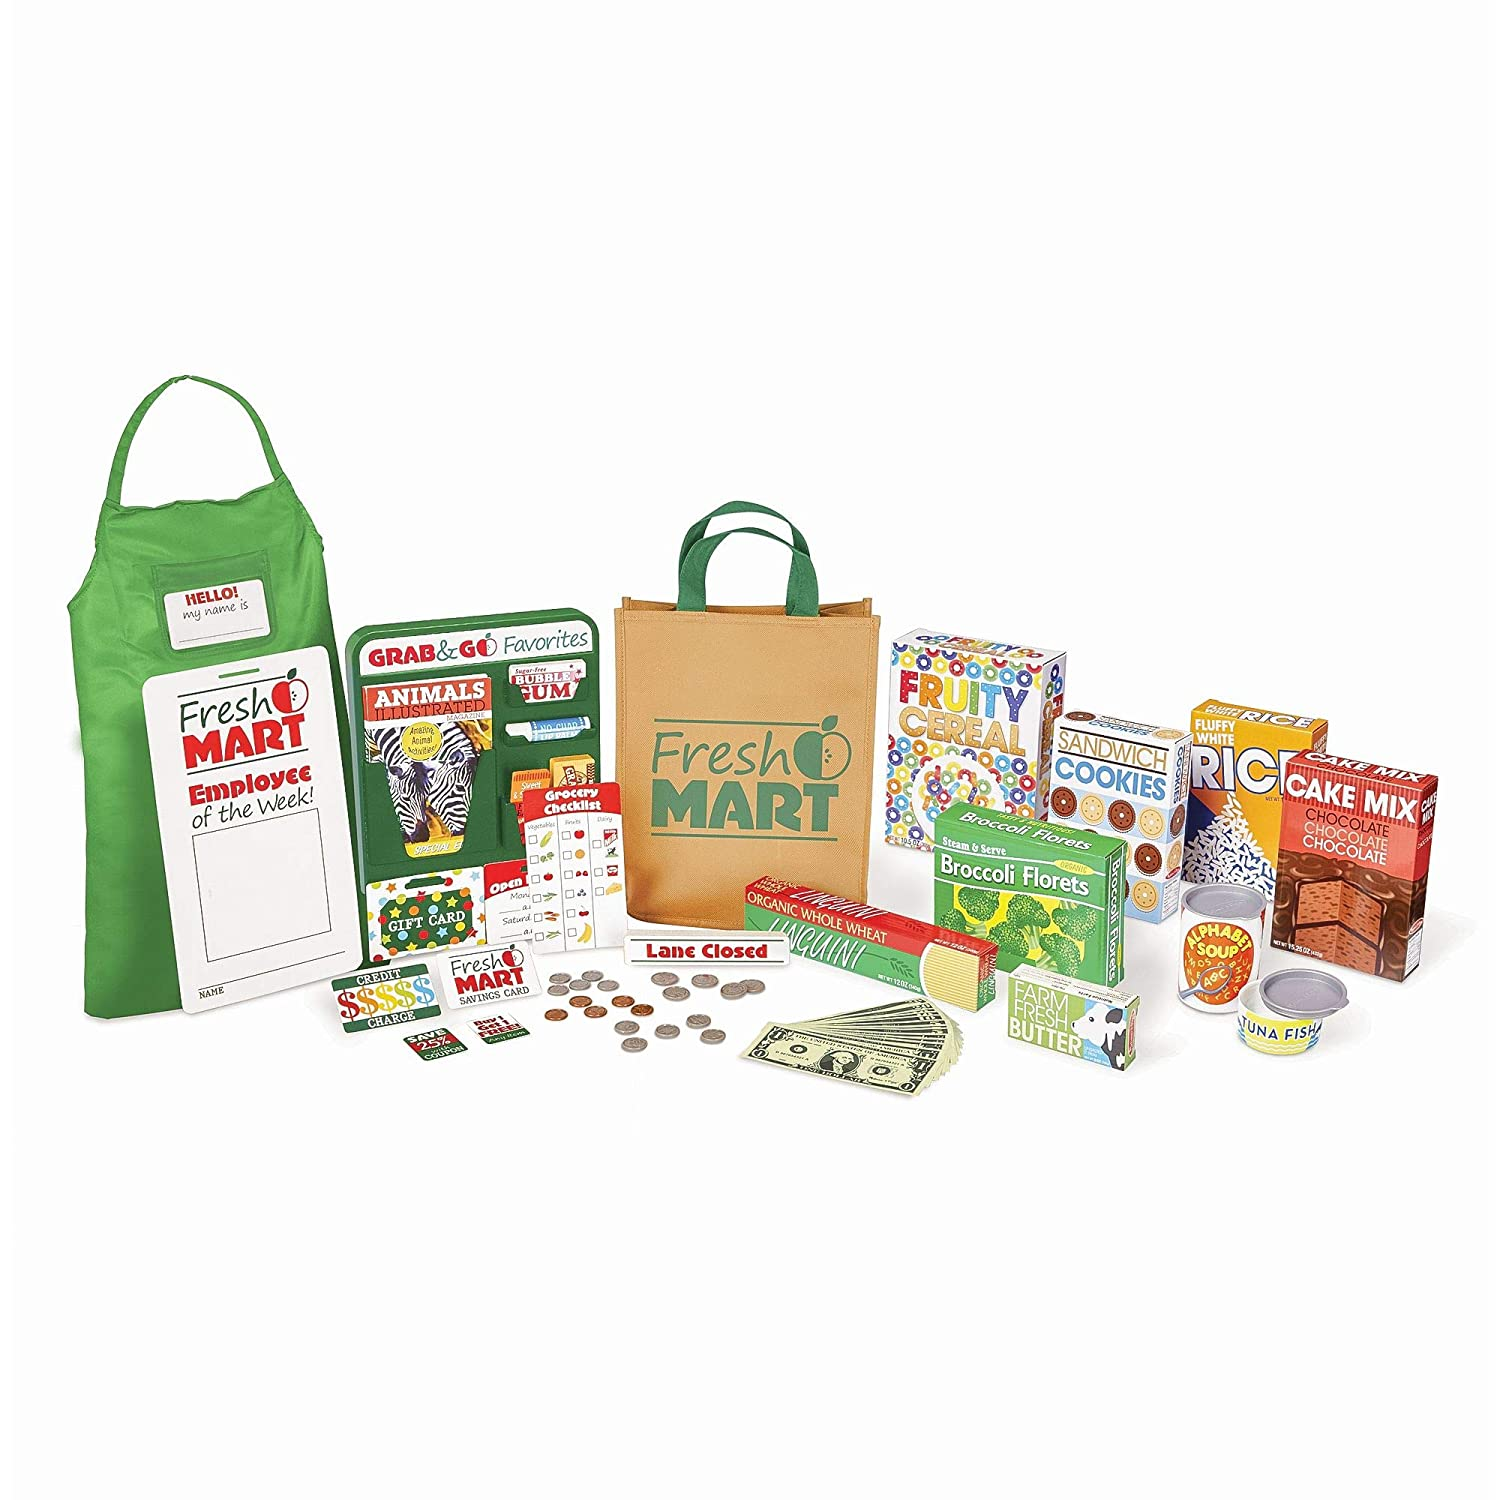 "Melissa & Doug Fresh Mart Grocery Store Companion Collection, Play Sets & Kitchens, Multiple Role Play Items, Helps Develop Social Skills, 10"" H x 3.5"" W x 13.75"" L"